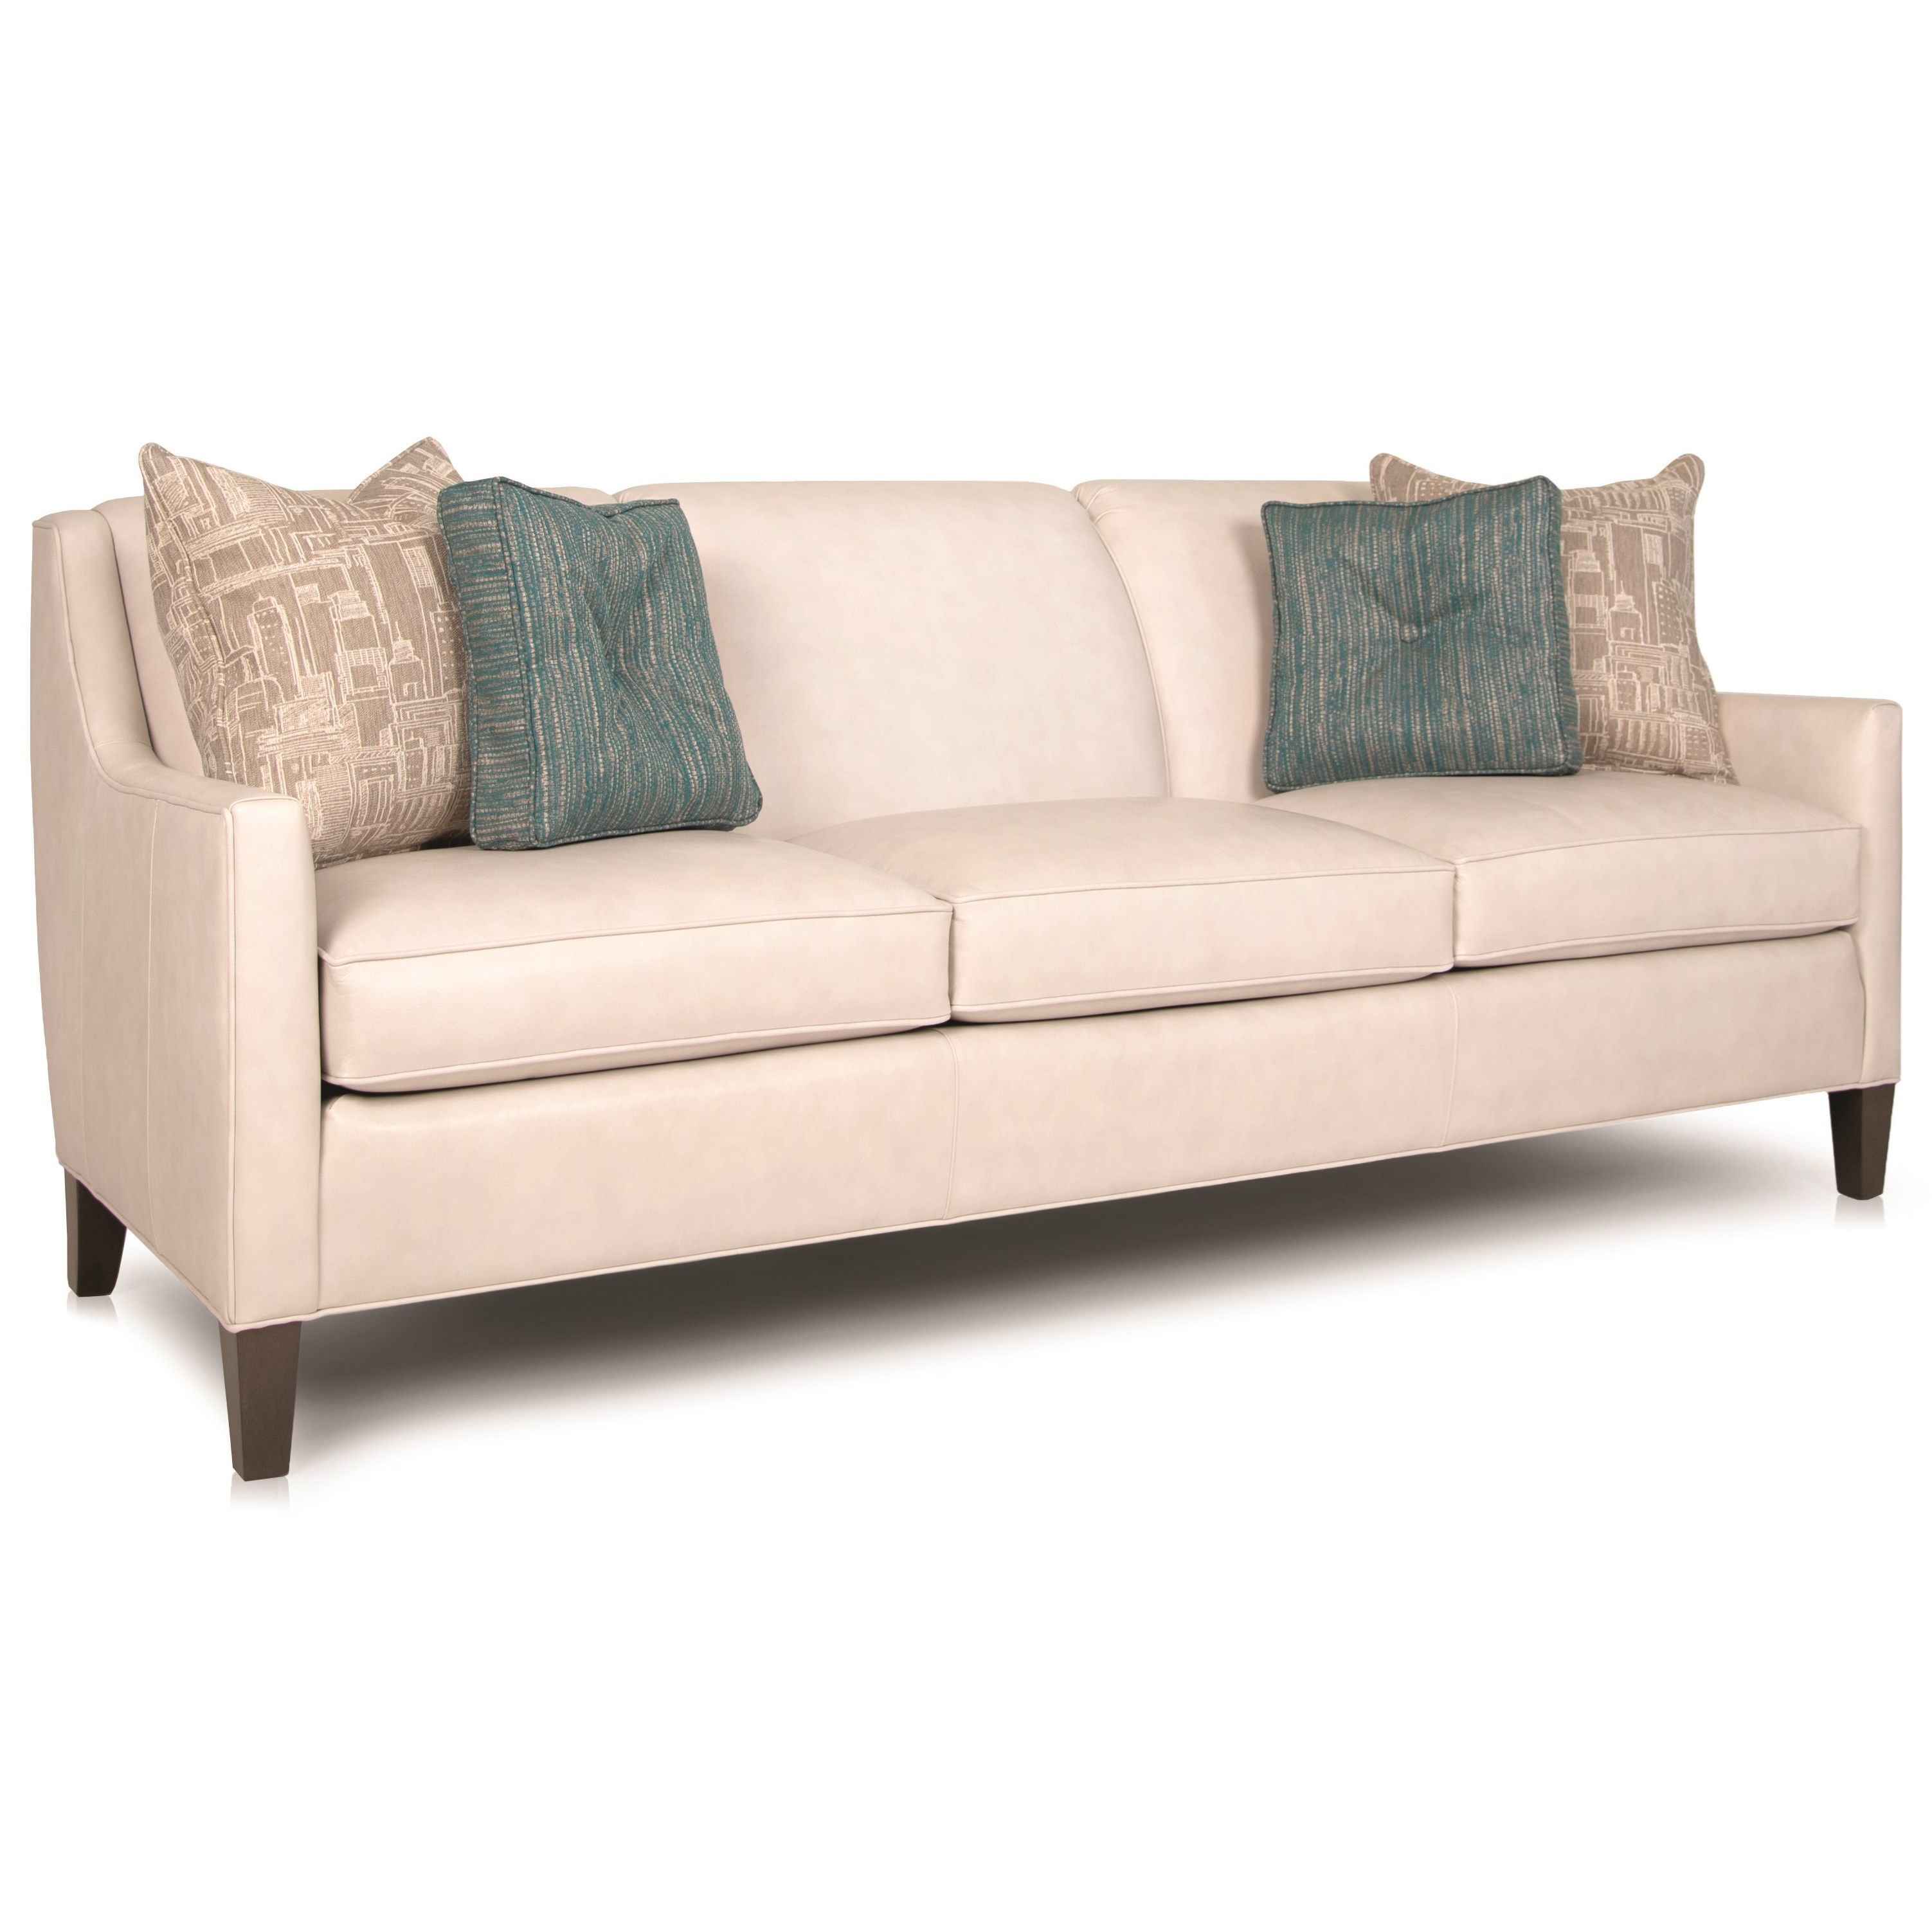 248 Sofa By Smith Brothers At Darvin Furniture Mattress Furniture Furniture Sofa